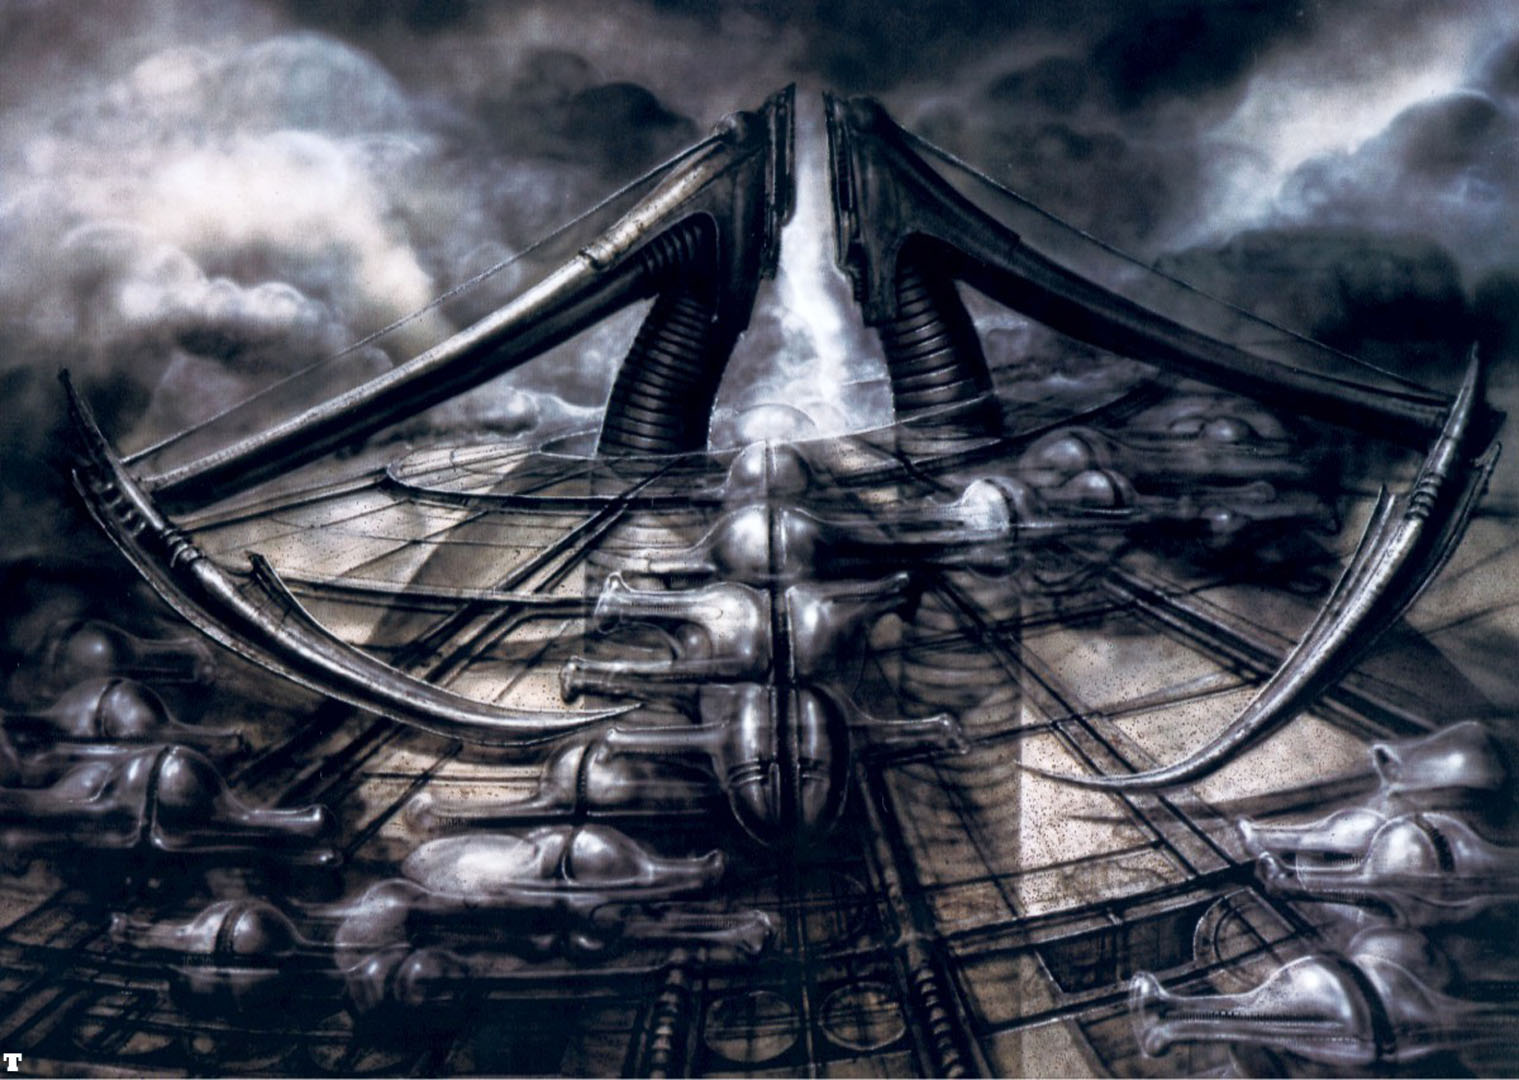 Biomechanical Landscape Scythe - Science Fiction H R Giger